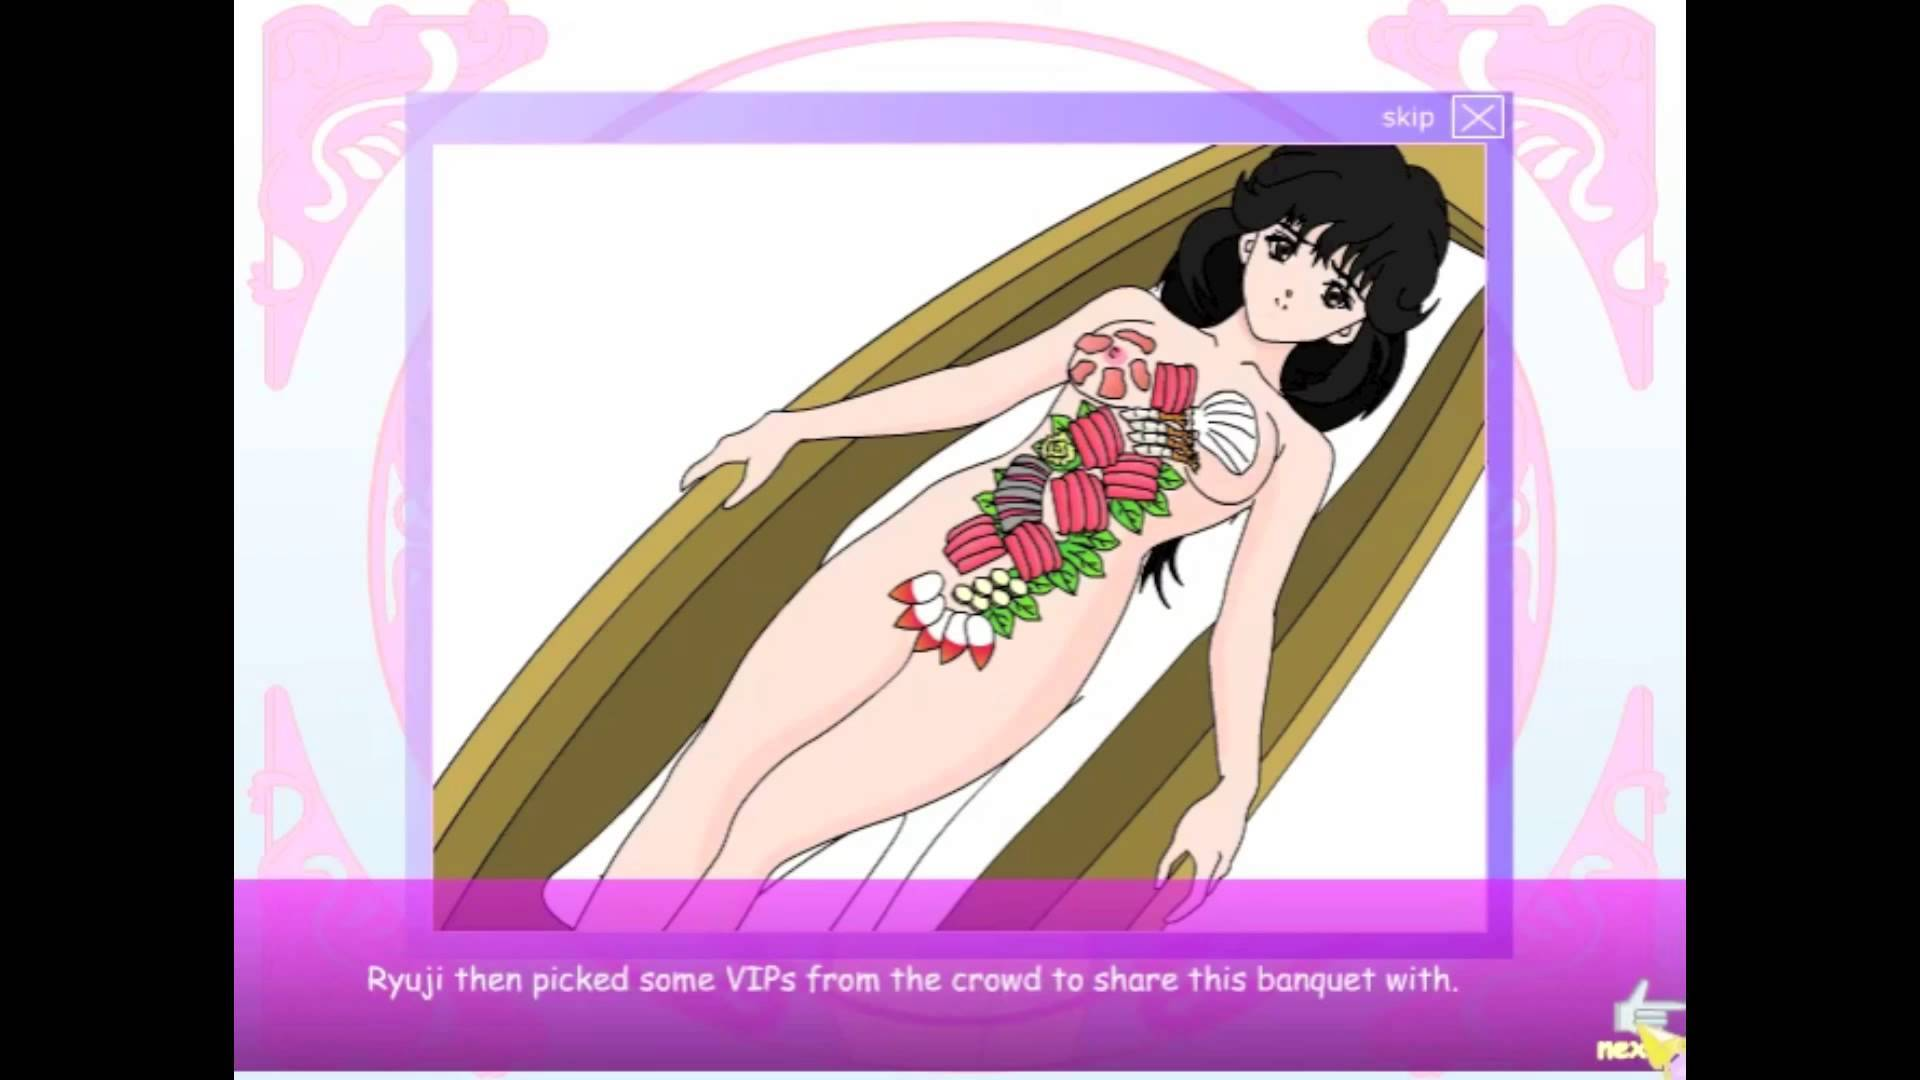 Have hentai sim girls guide join